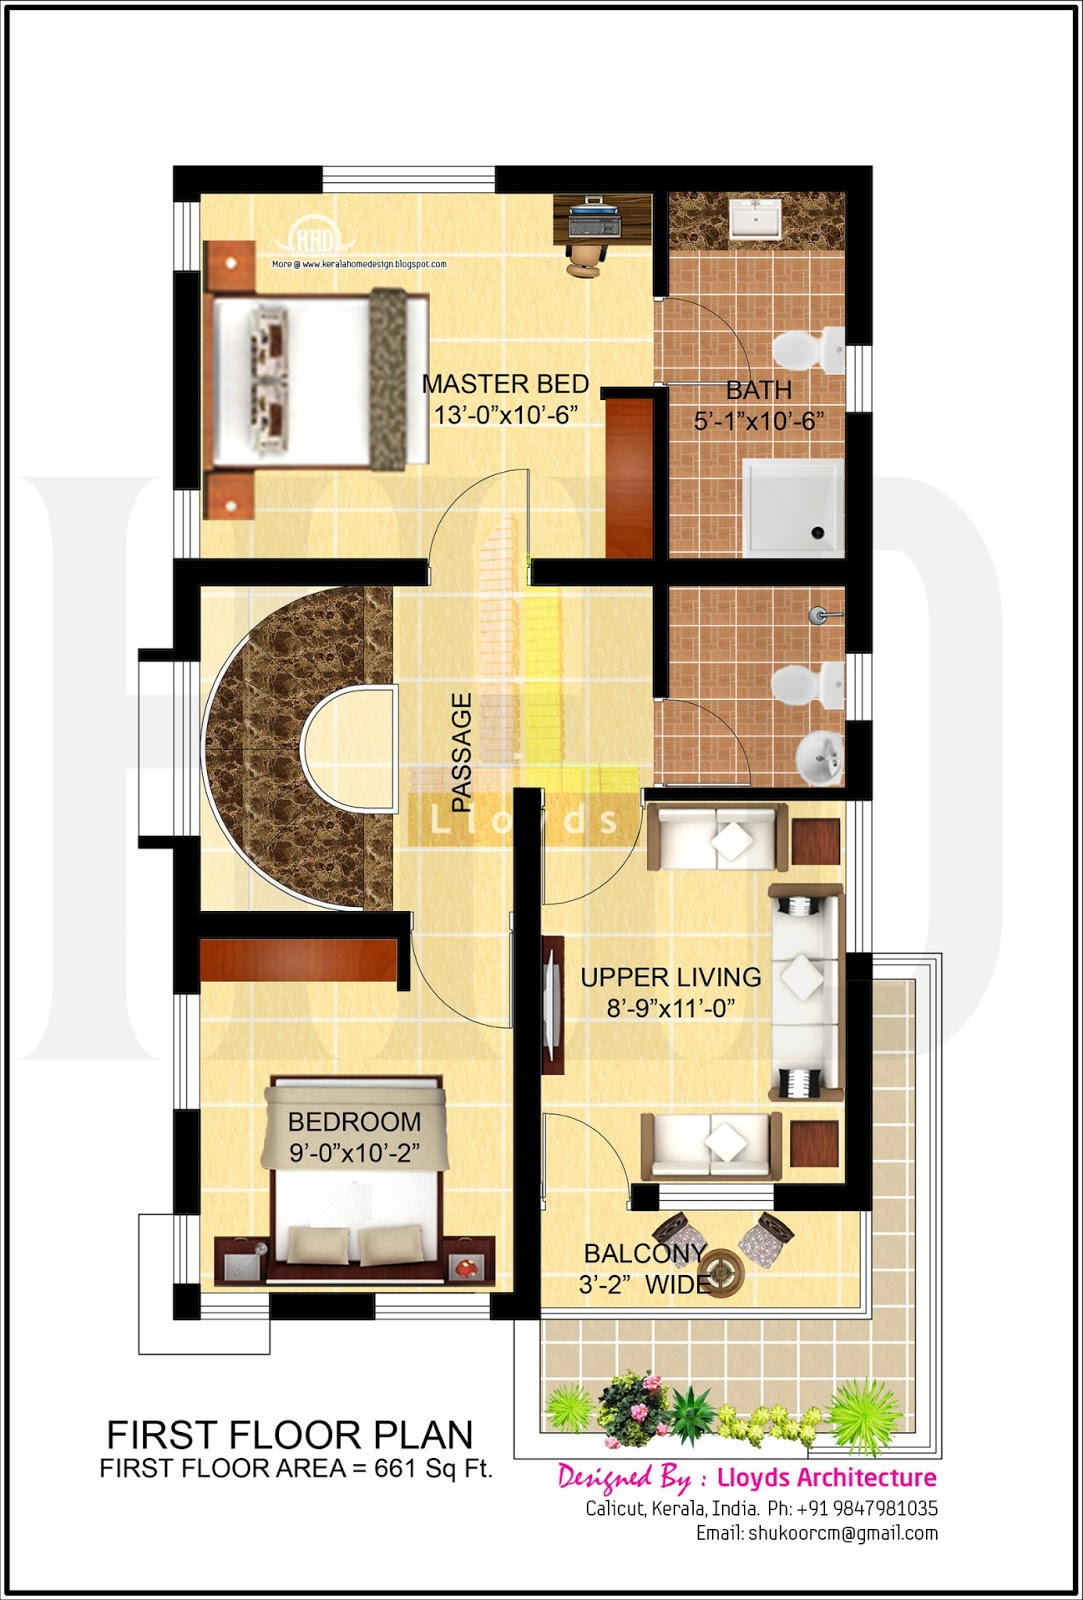 4 bedroom house plan in less that 3 cents Home Kerala Plans